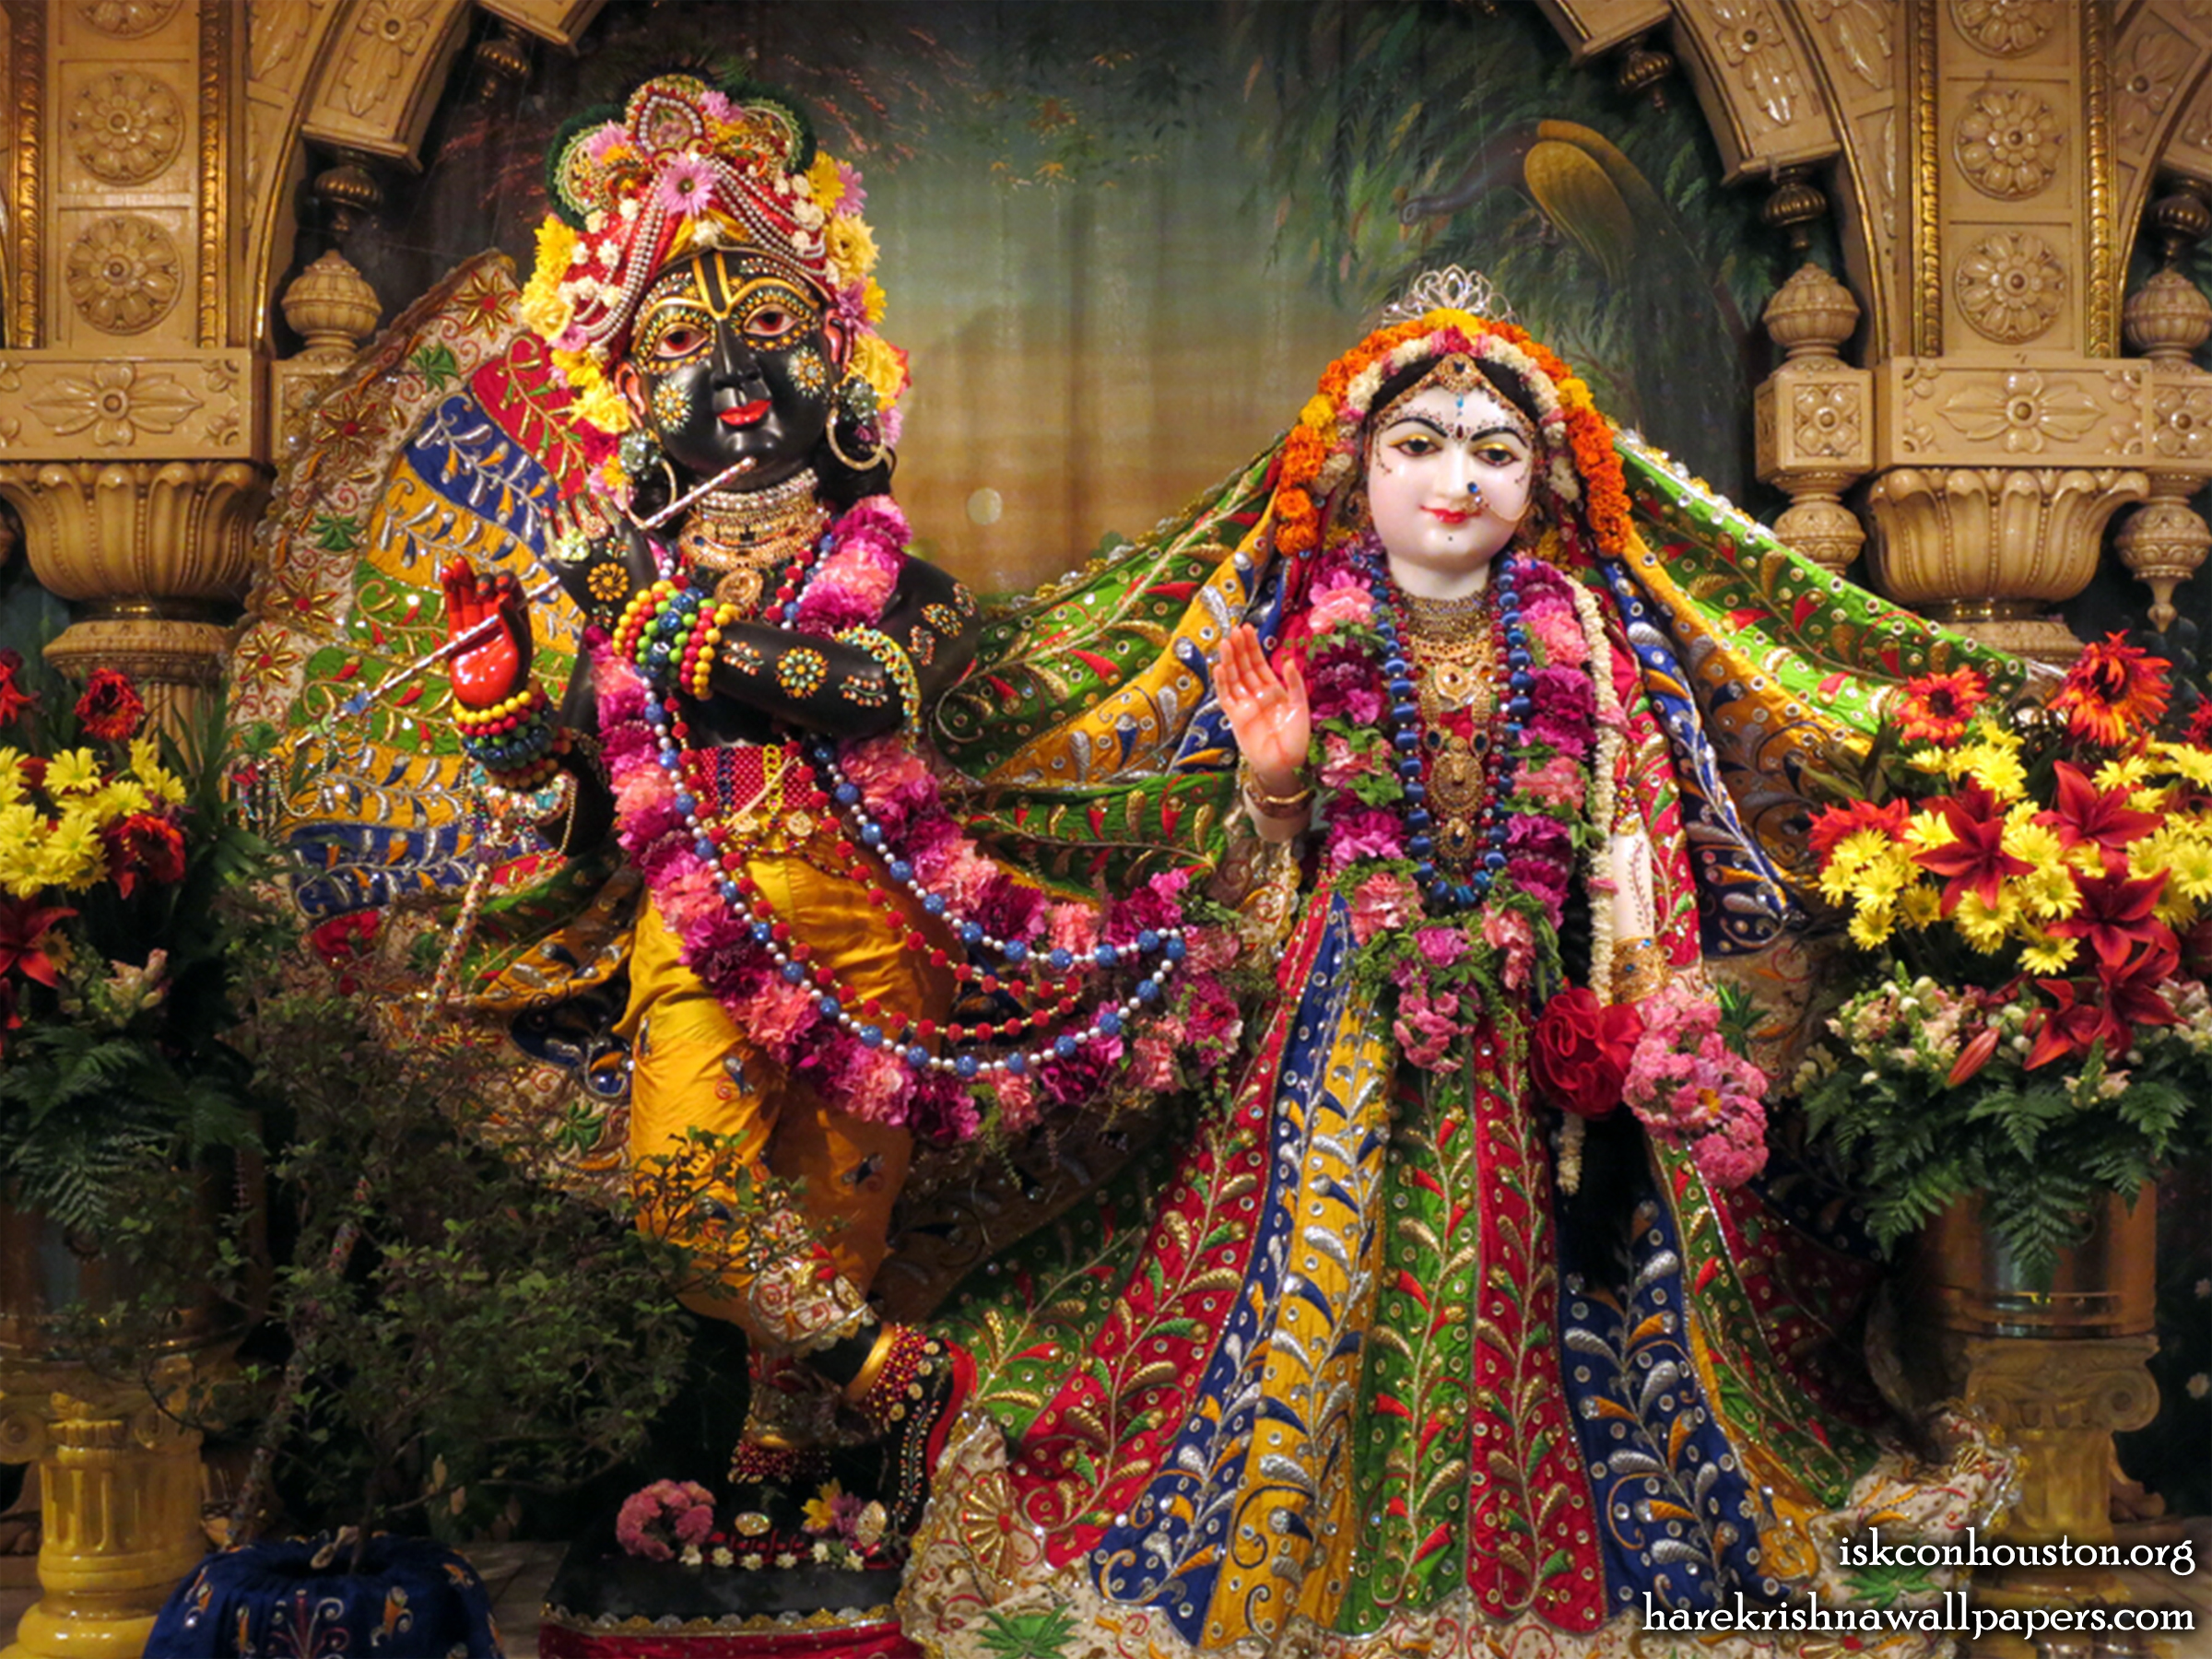 Sri Sri Radha Nilamadhava Wallpaper (010) Size 2400x1800 Download